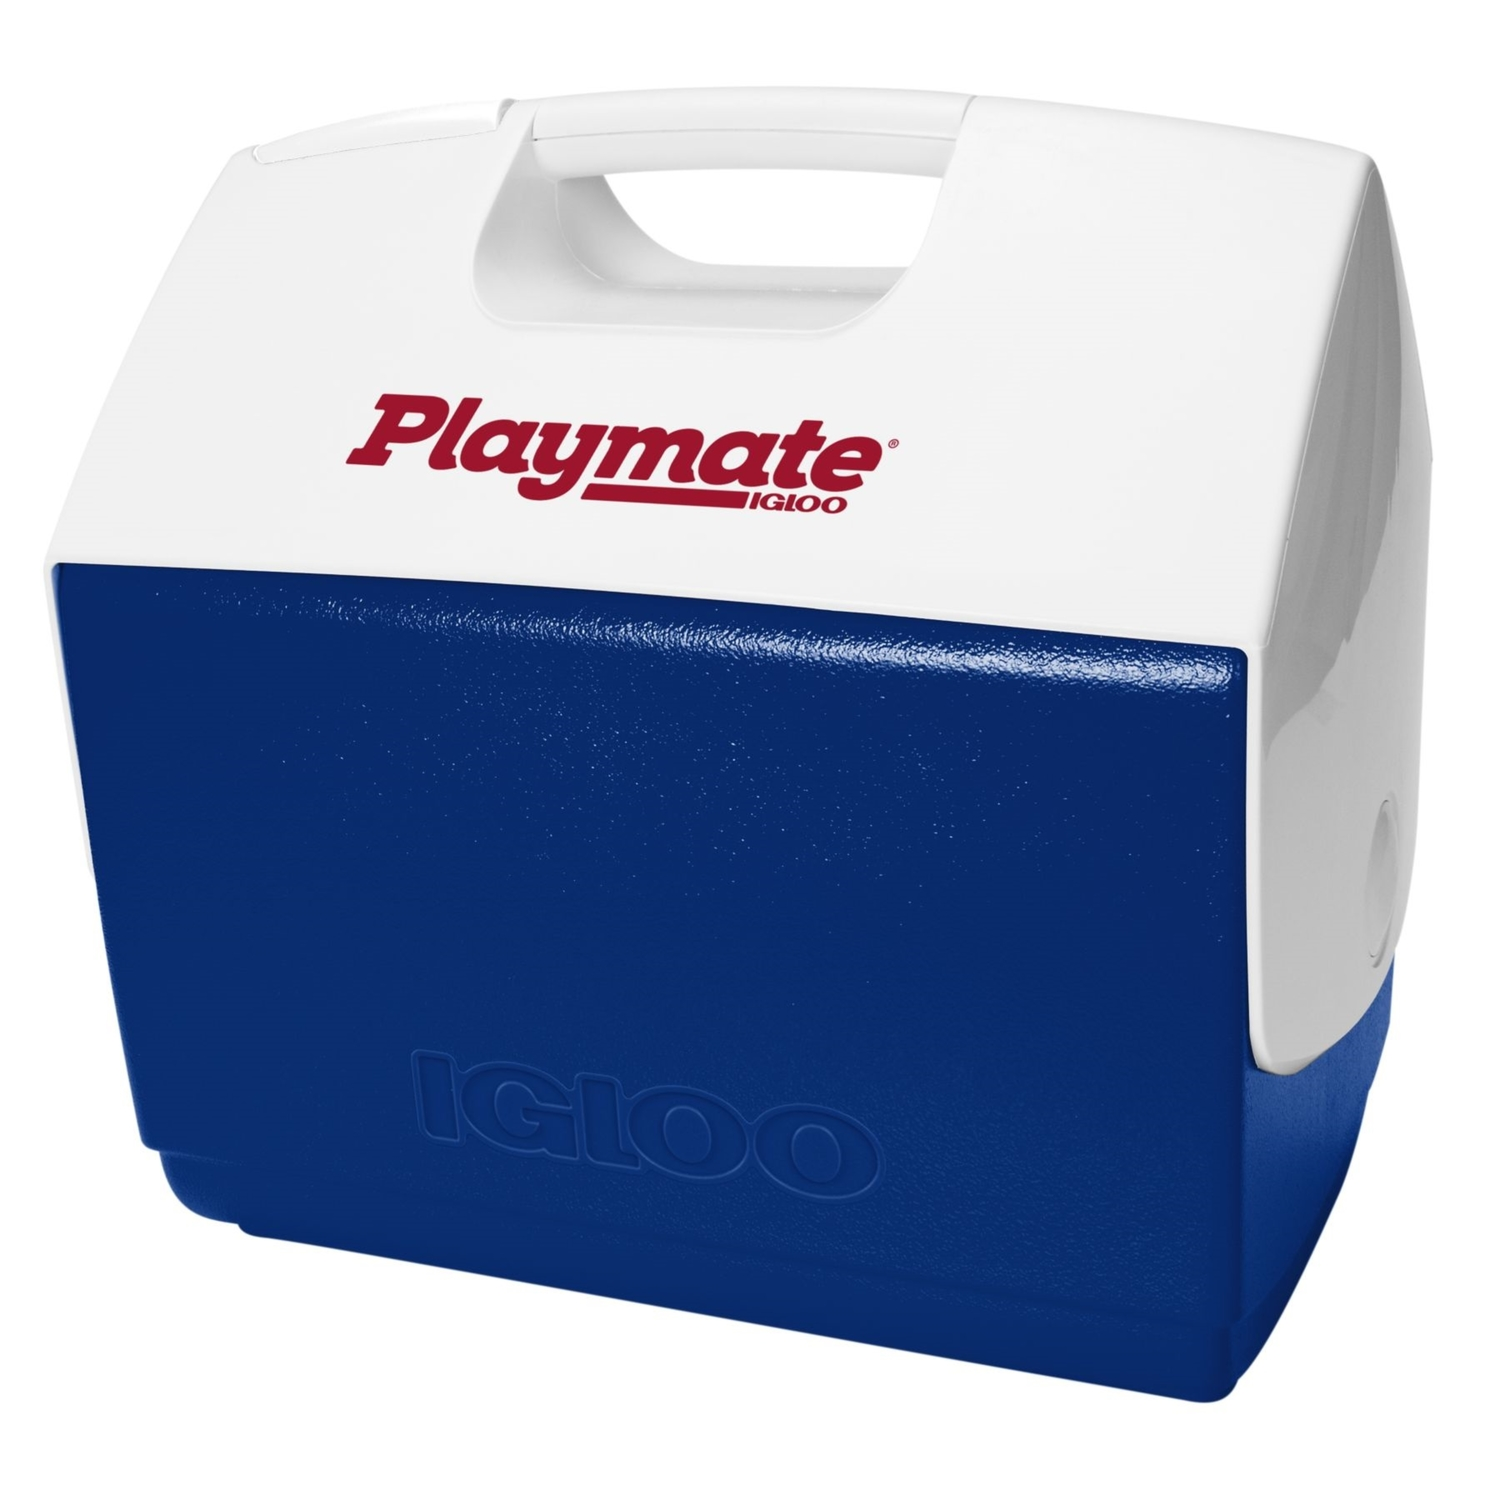 Igloo  Playmate  Cooler  16 qt. Blue